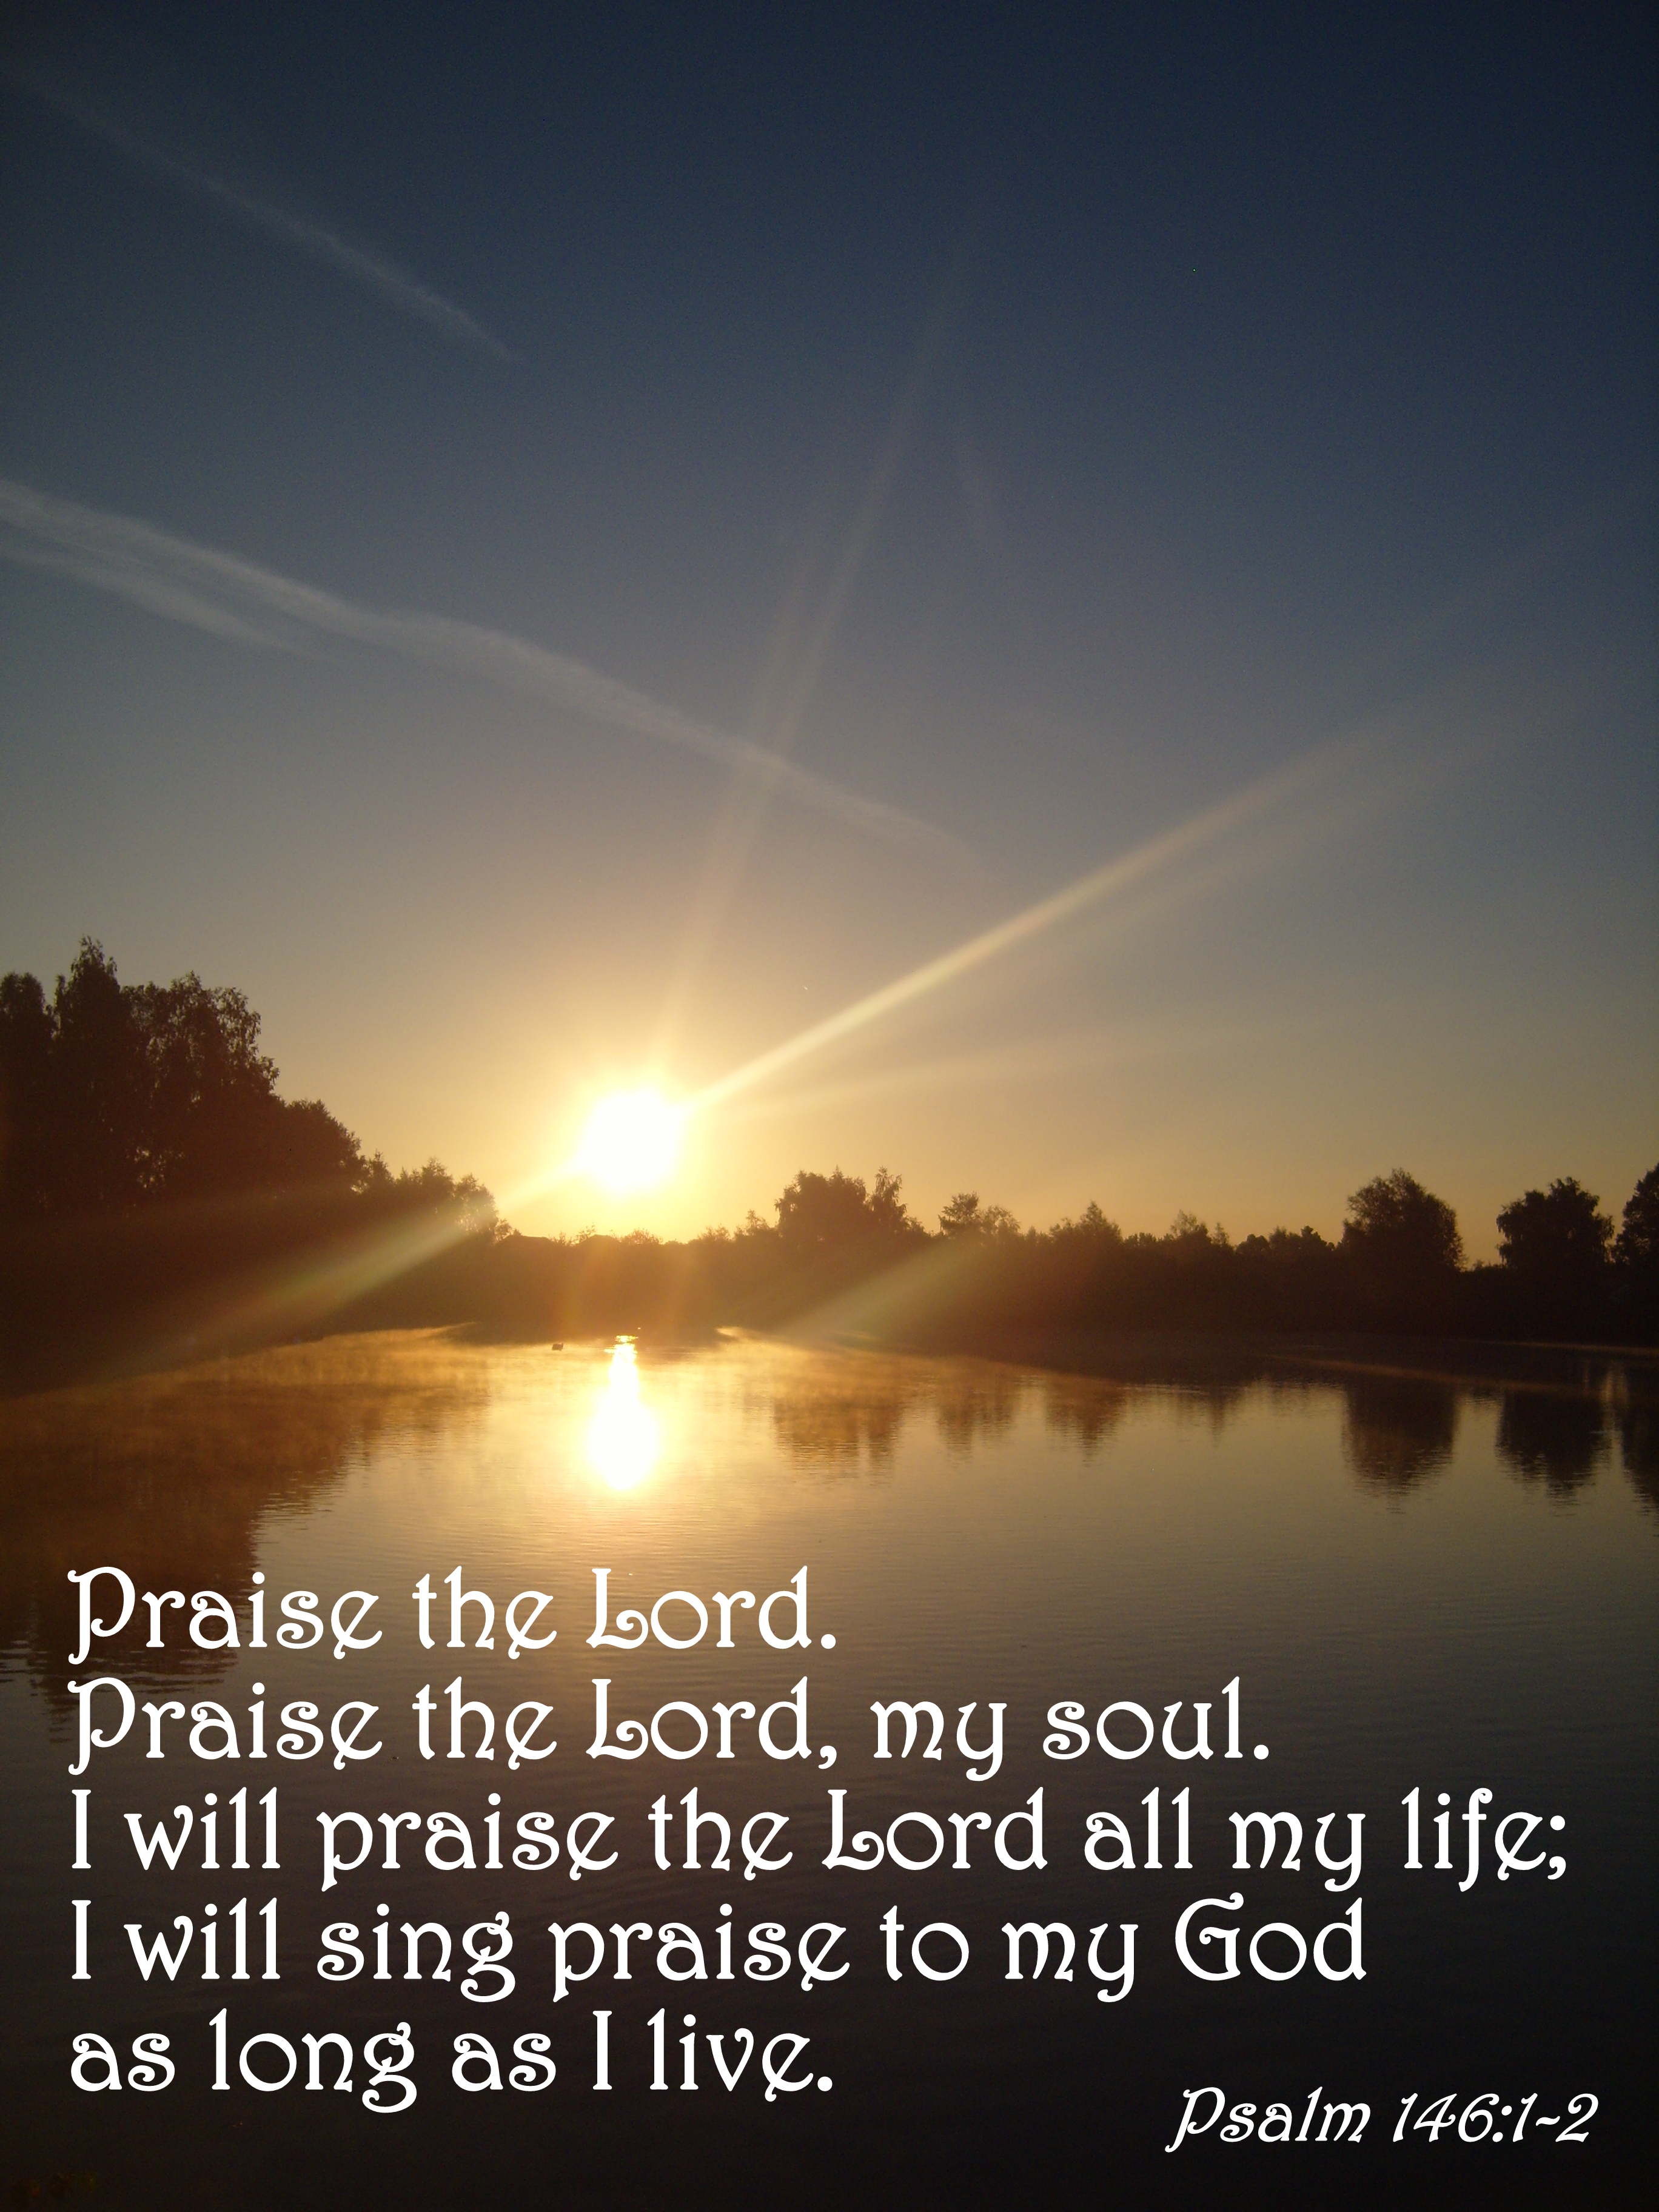 Praise His Name – Psalm 146:1-2 | The Bottom of a Bottle